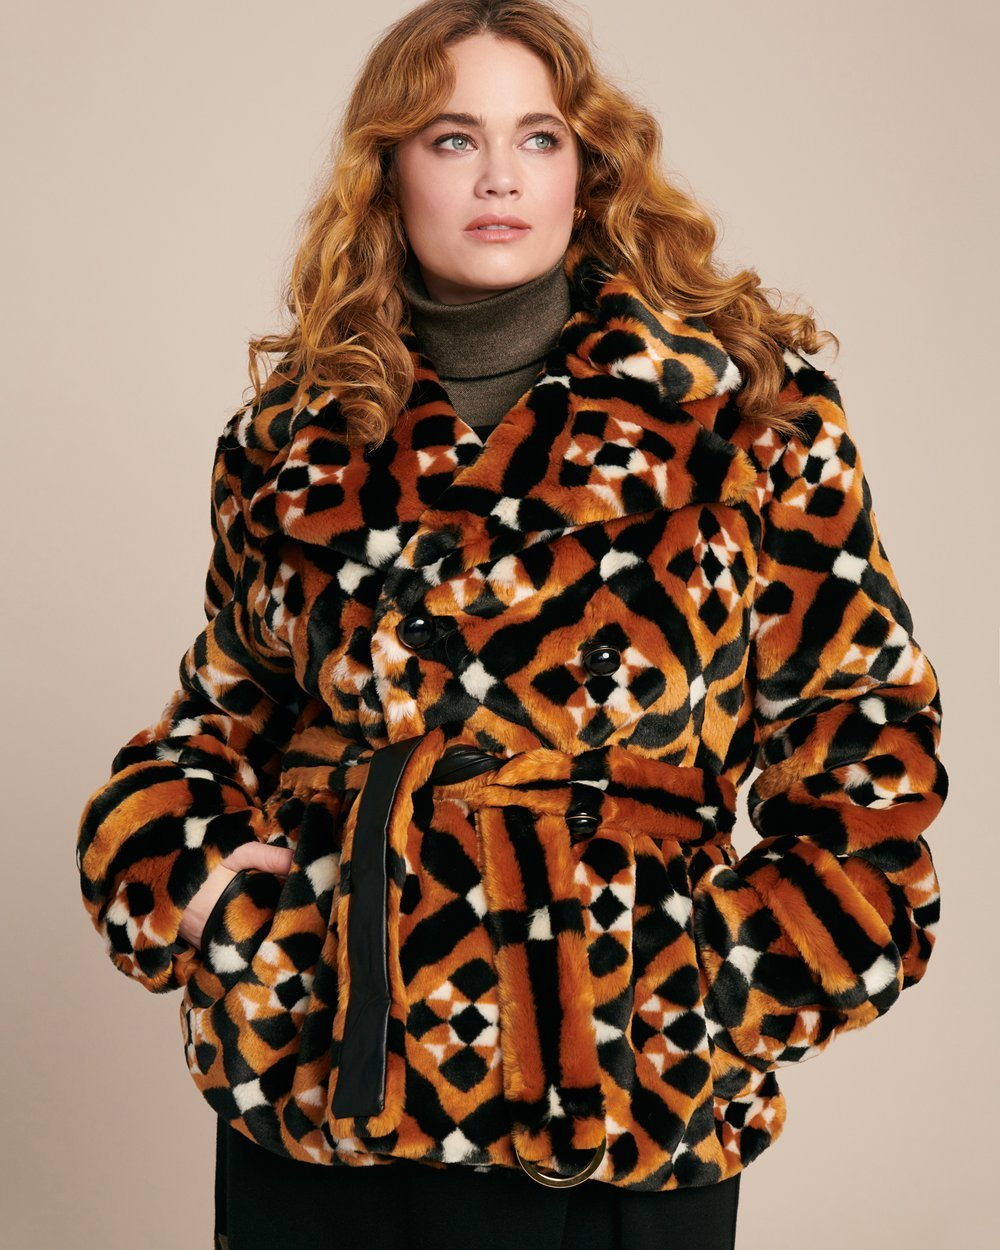 Luxury Plus SIze Fashion Finds at 11 Honore: MARY KATRANTZOU Oates Plus Size Coat with Faux Fur